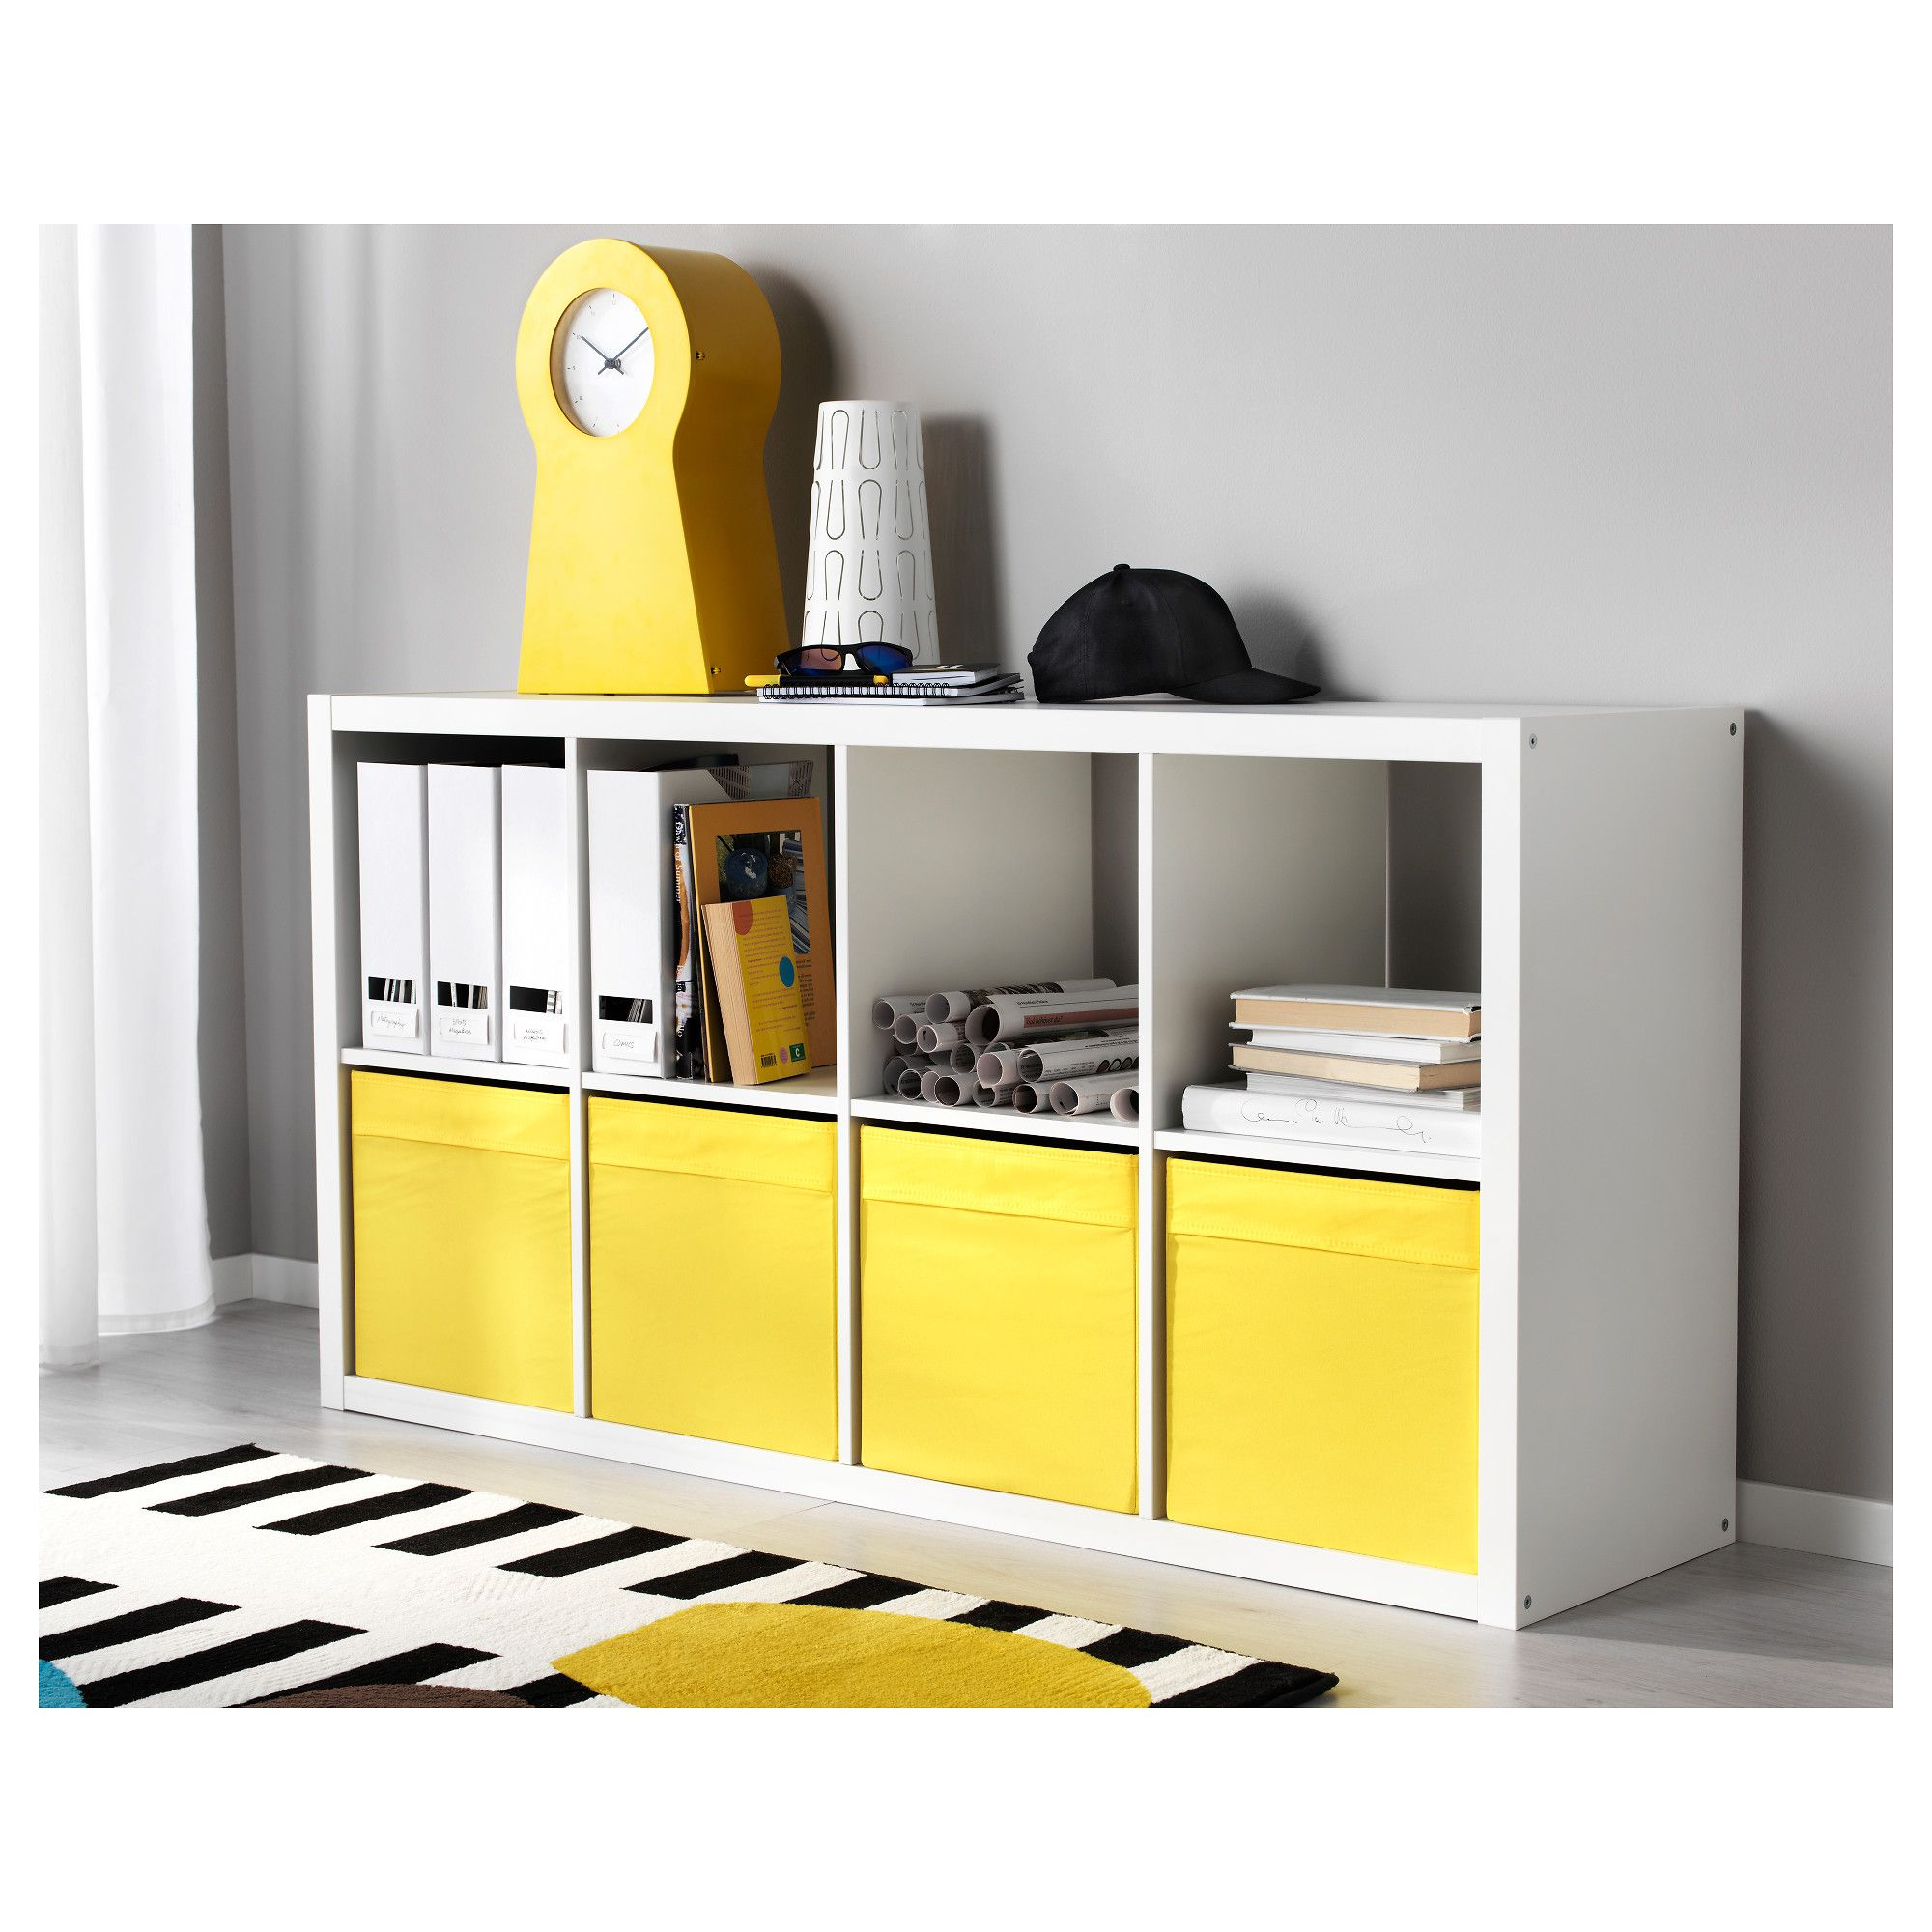 kallax shelf unit white kallax shelf unit ikea kallax shelf and kallax shelf. Black Bedroom Furniture Sets. Home Design Ideas